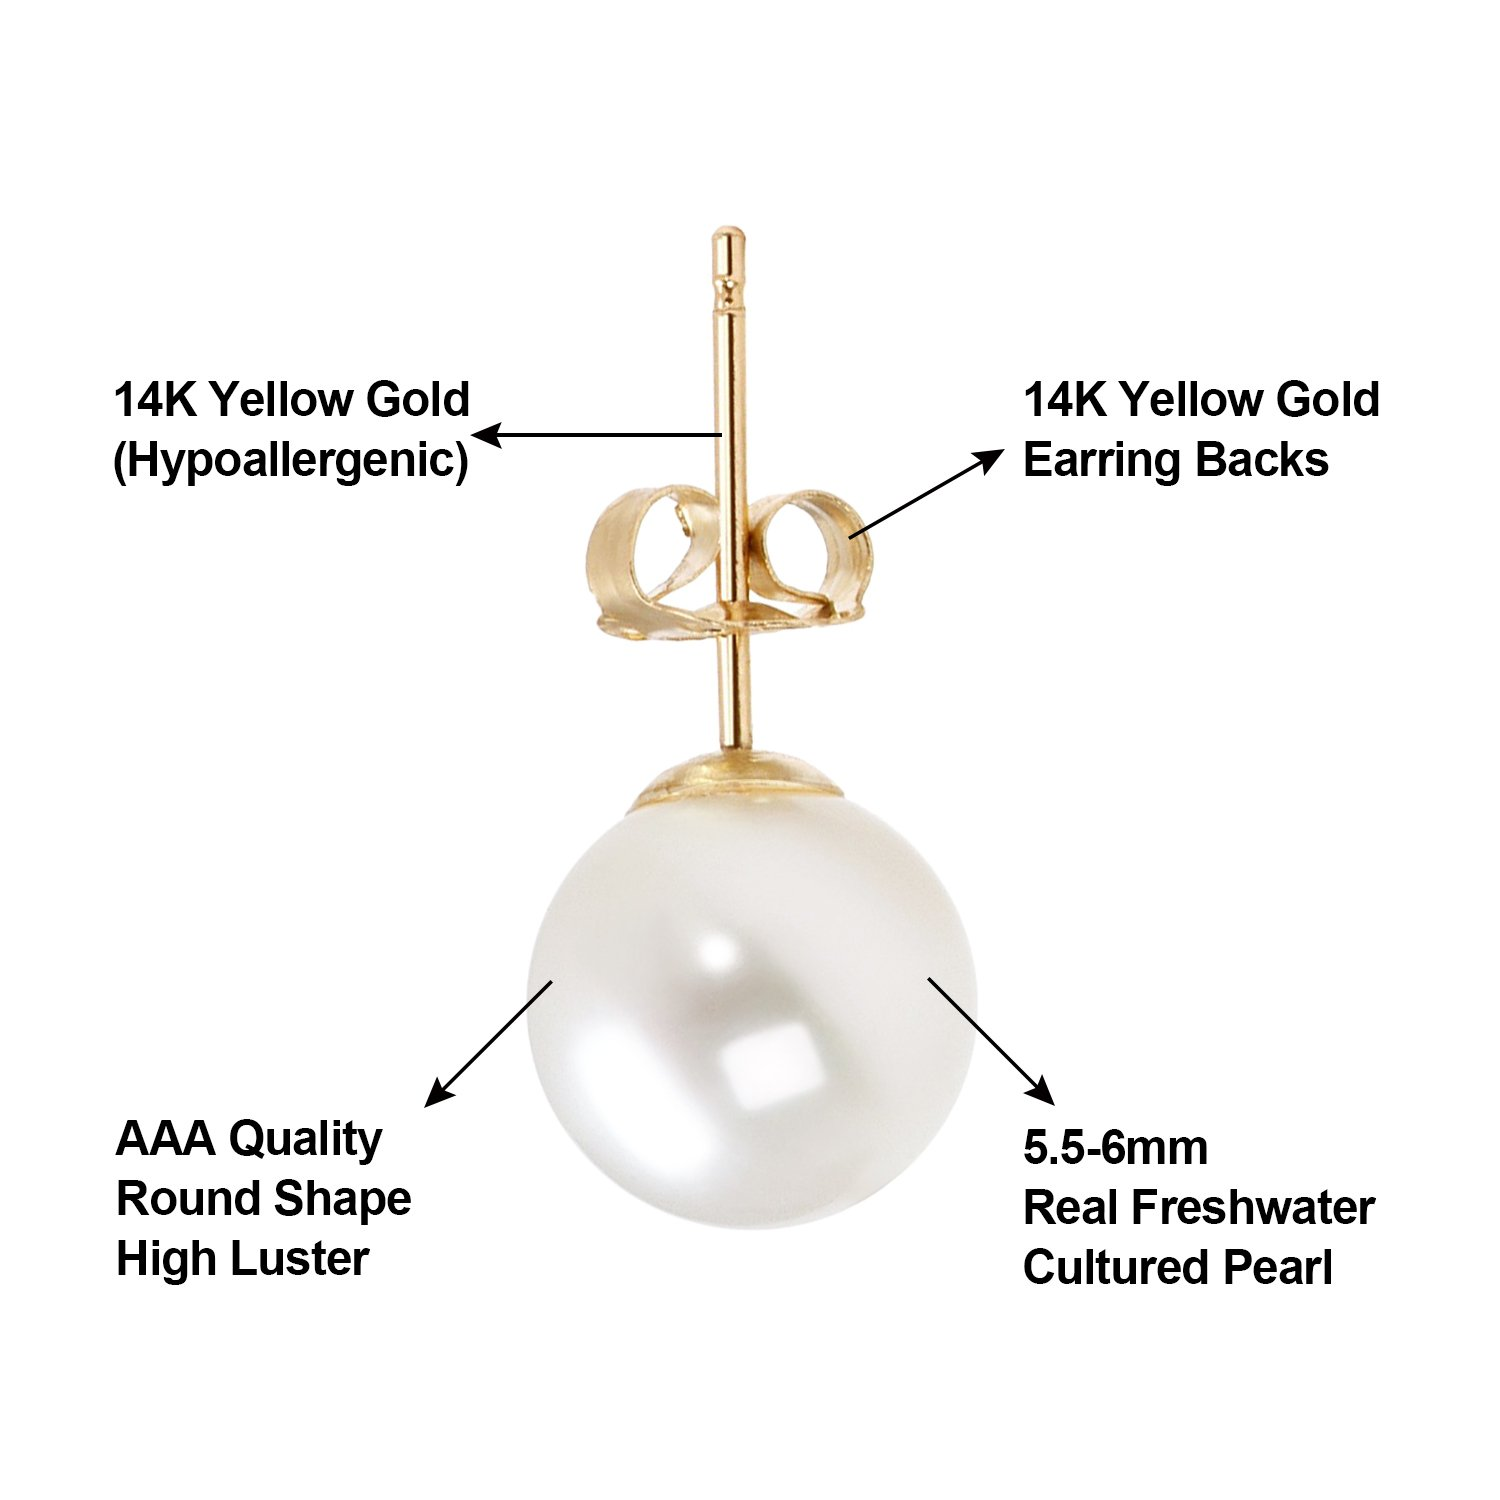 14K Gold AAA+ Handpicked Round Freshwater Cultured White Pearl Stud Earrings for Women Girls (yellow-gold, 5.5-6mm) by JORA (Image #4)